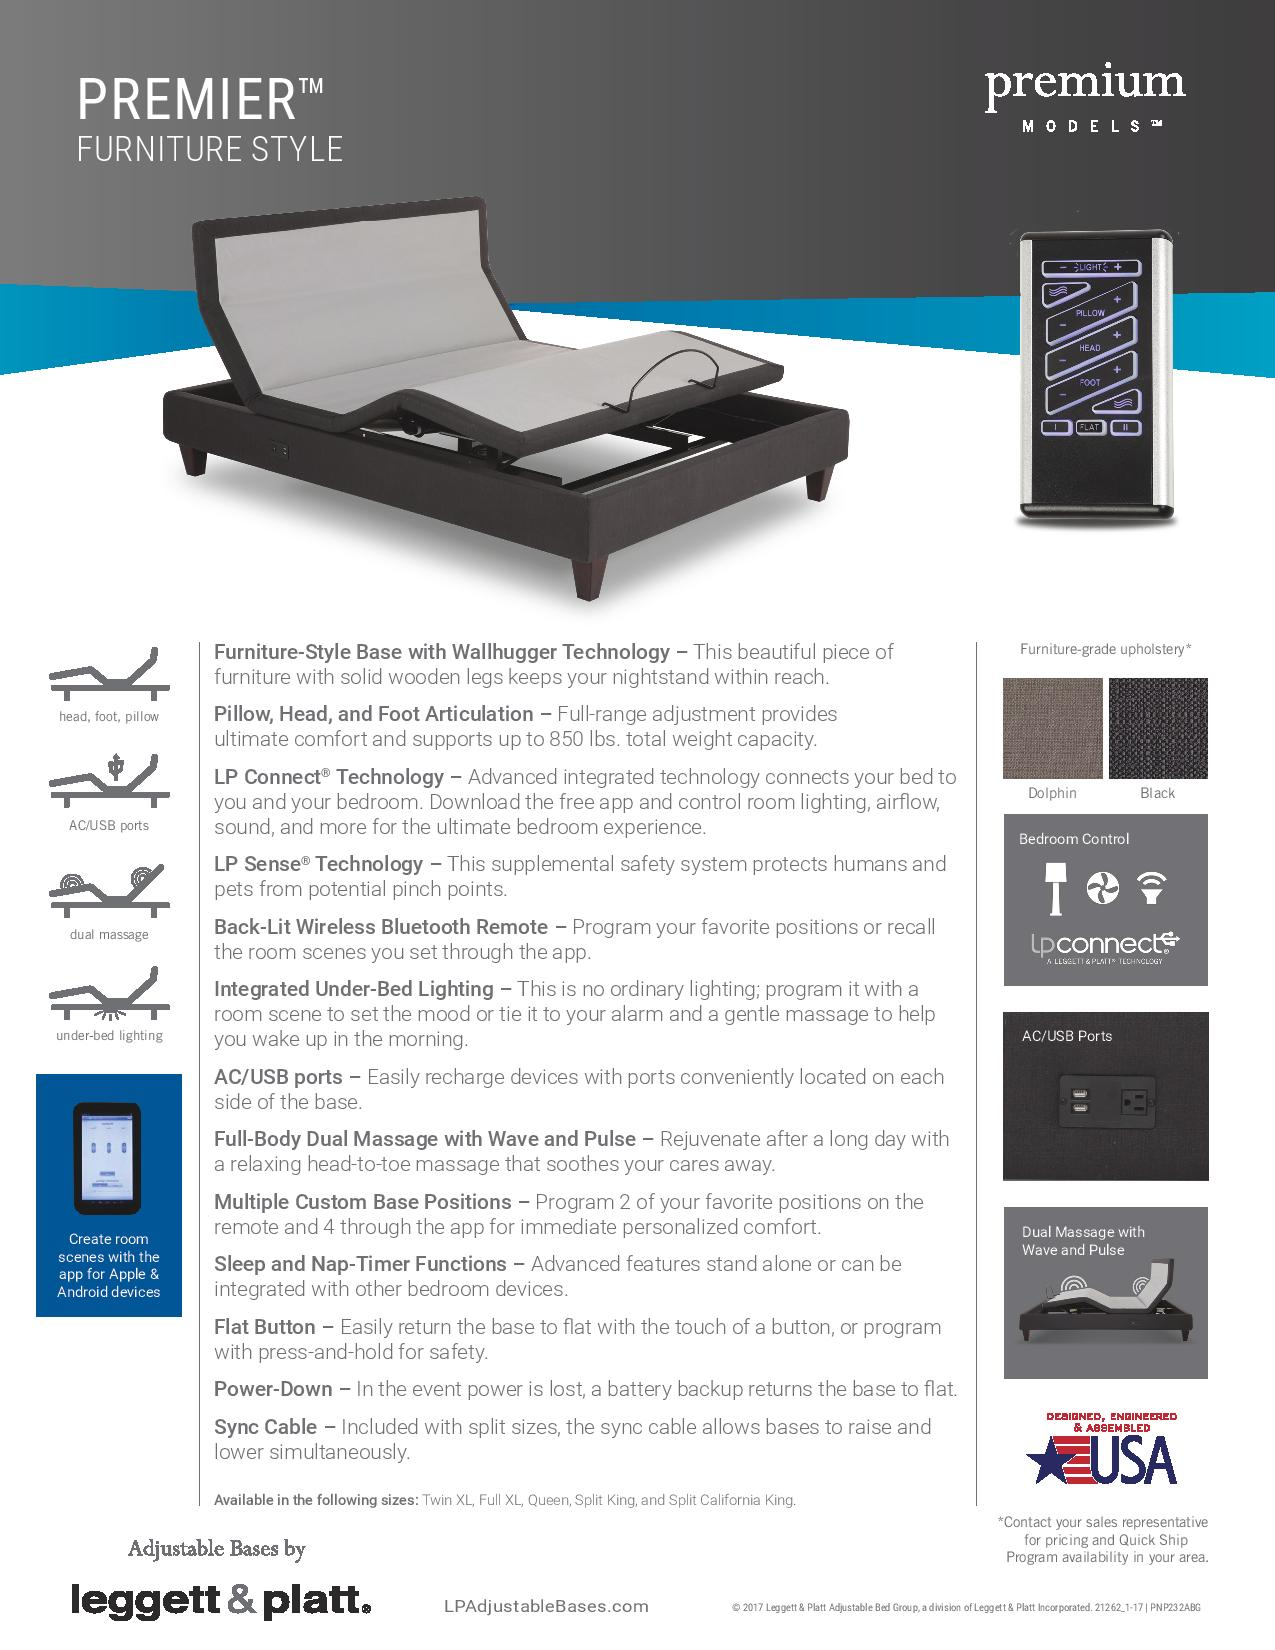 premier-furniture-style-bed-base-page-001